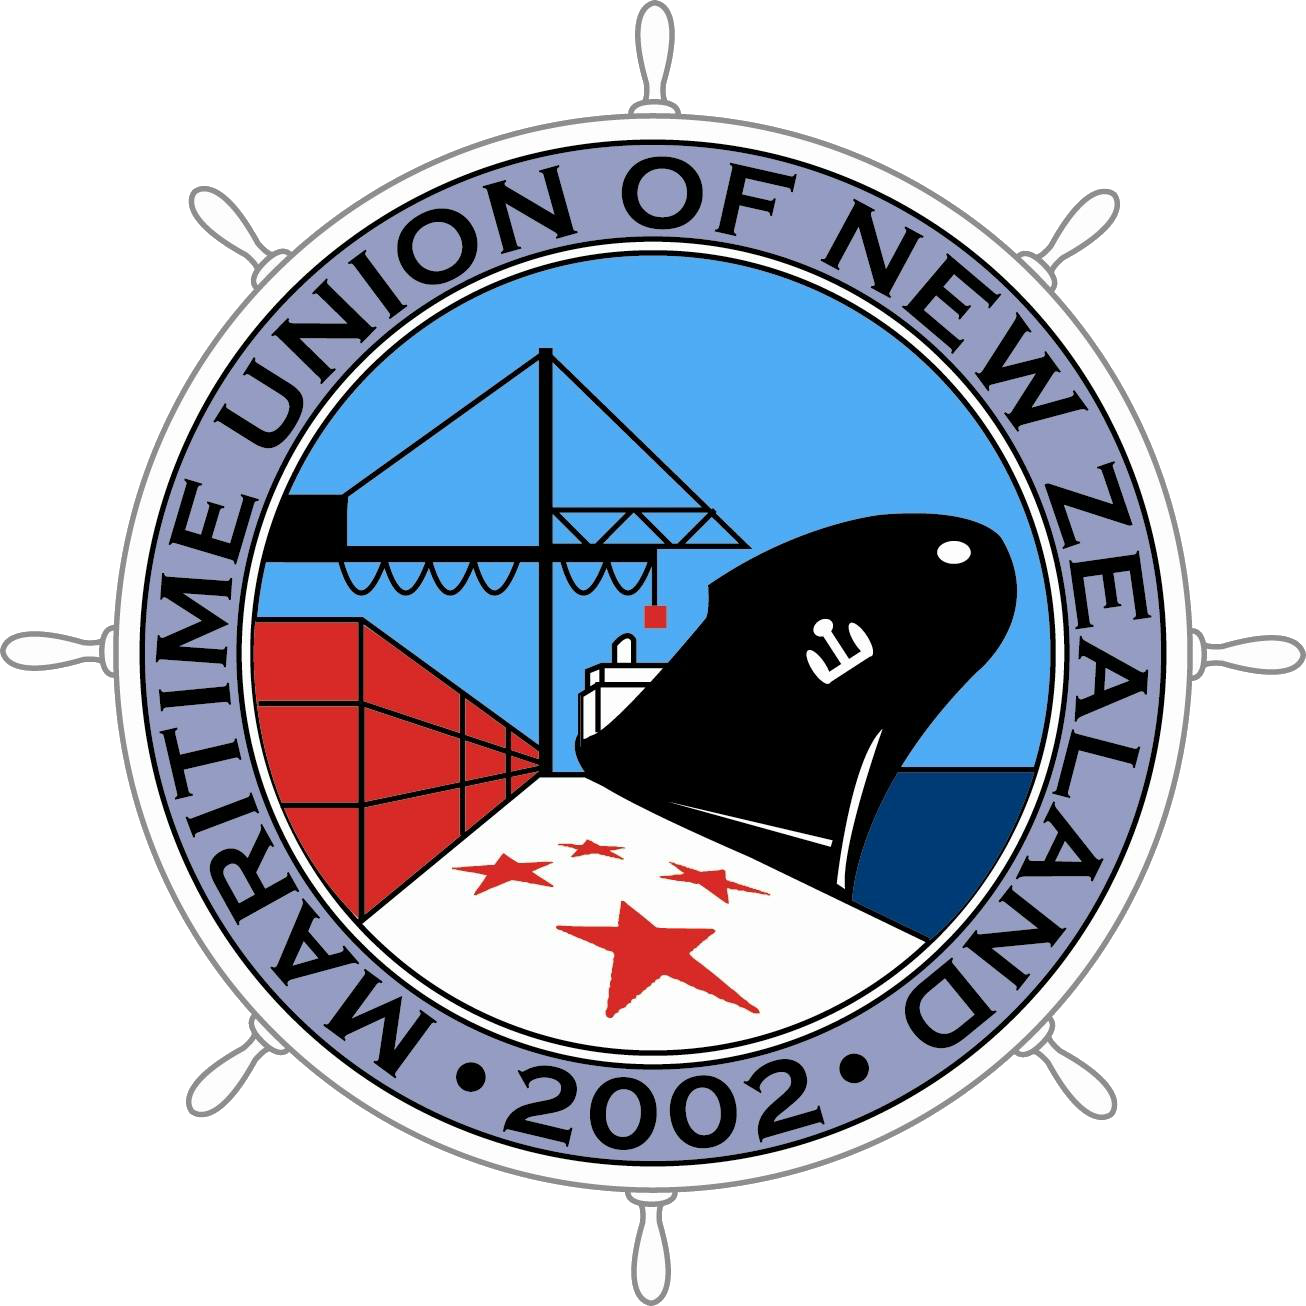 Maritime Union of New Zealand logo